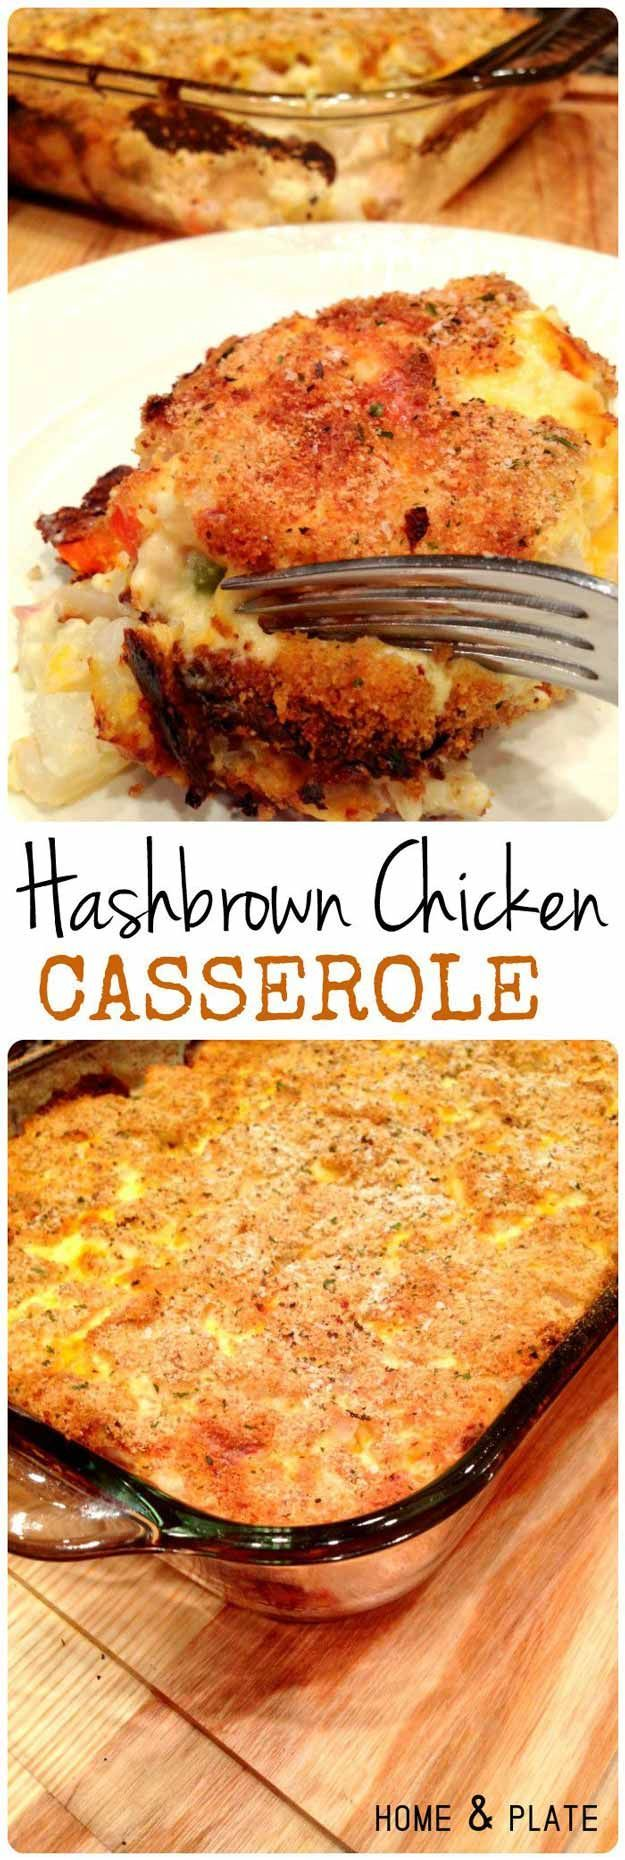 Hashbrown Chicken Casserole | 15 Savory Chicken Casserole Recipes to Feed the Whole Family | Easy To Make And Satisfyingly Delicious Homemade Recipes by Pioneer Settler at pioneersettler.co...